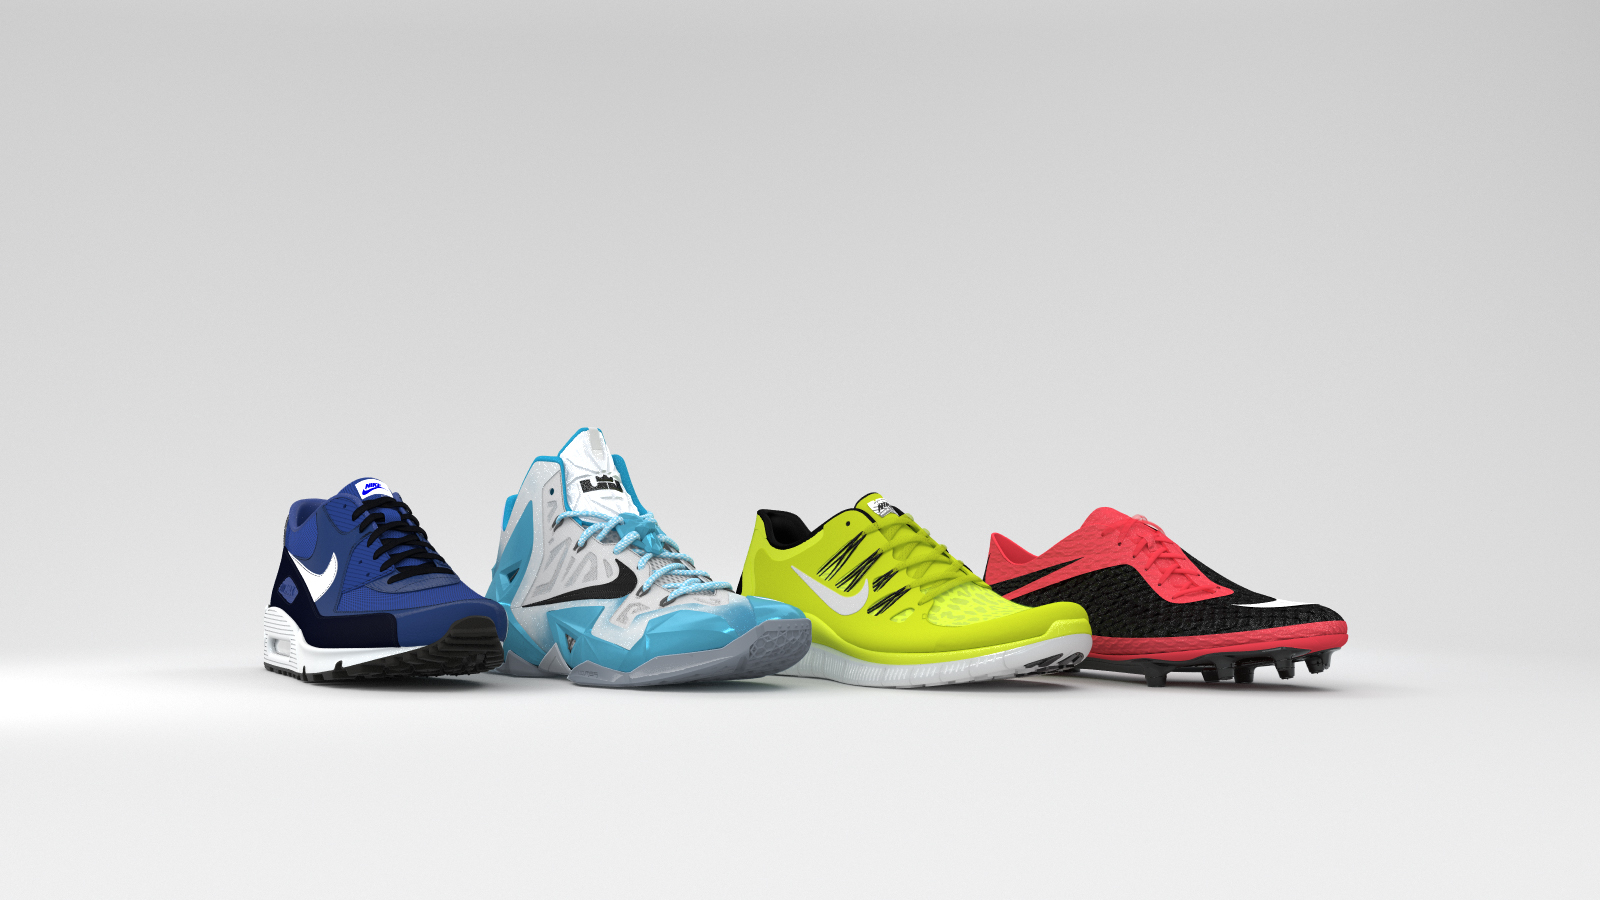 NIKEiD Customize Shoes and Accessories. Nike.com